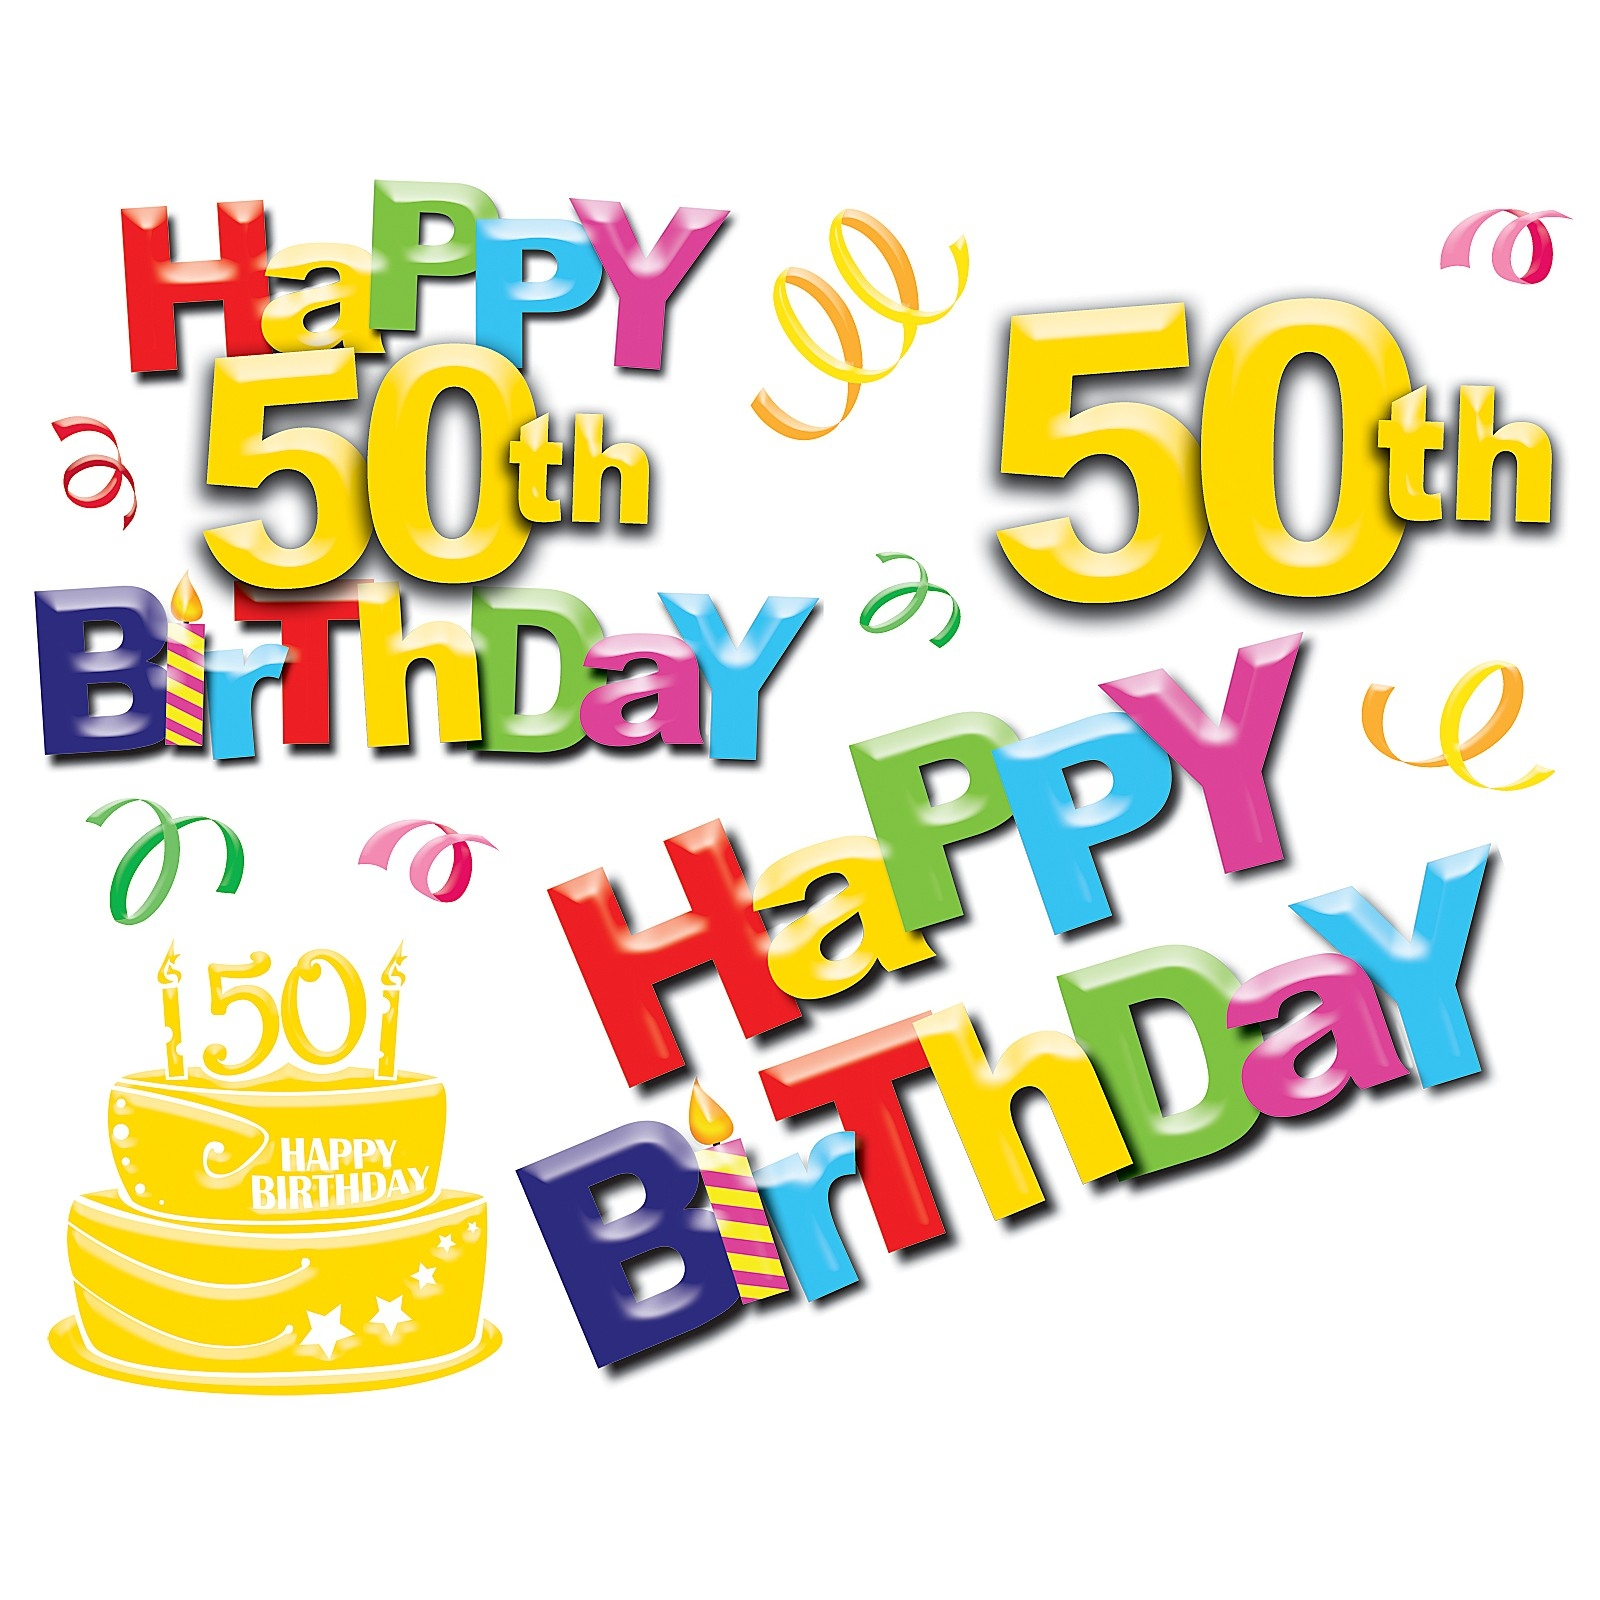 50th birthday clipart funny ; funny-happy-50th-birthday-images-funny-happy-50th-birthday-images-fresh-free-happy-50th-birthday-clip-art-clip-art-library